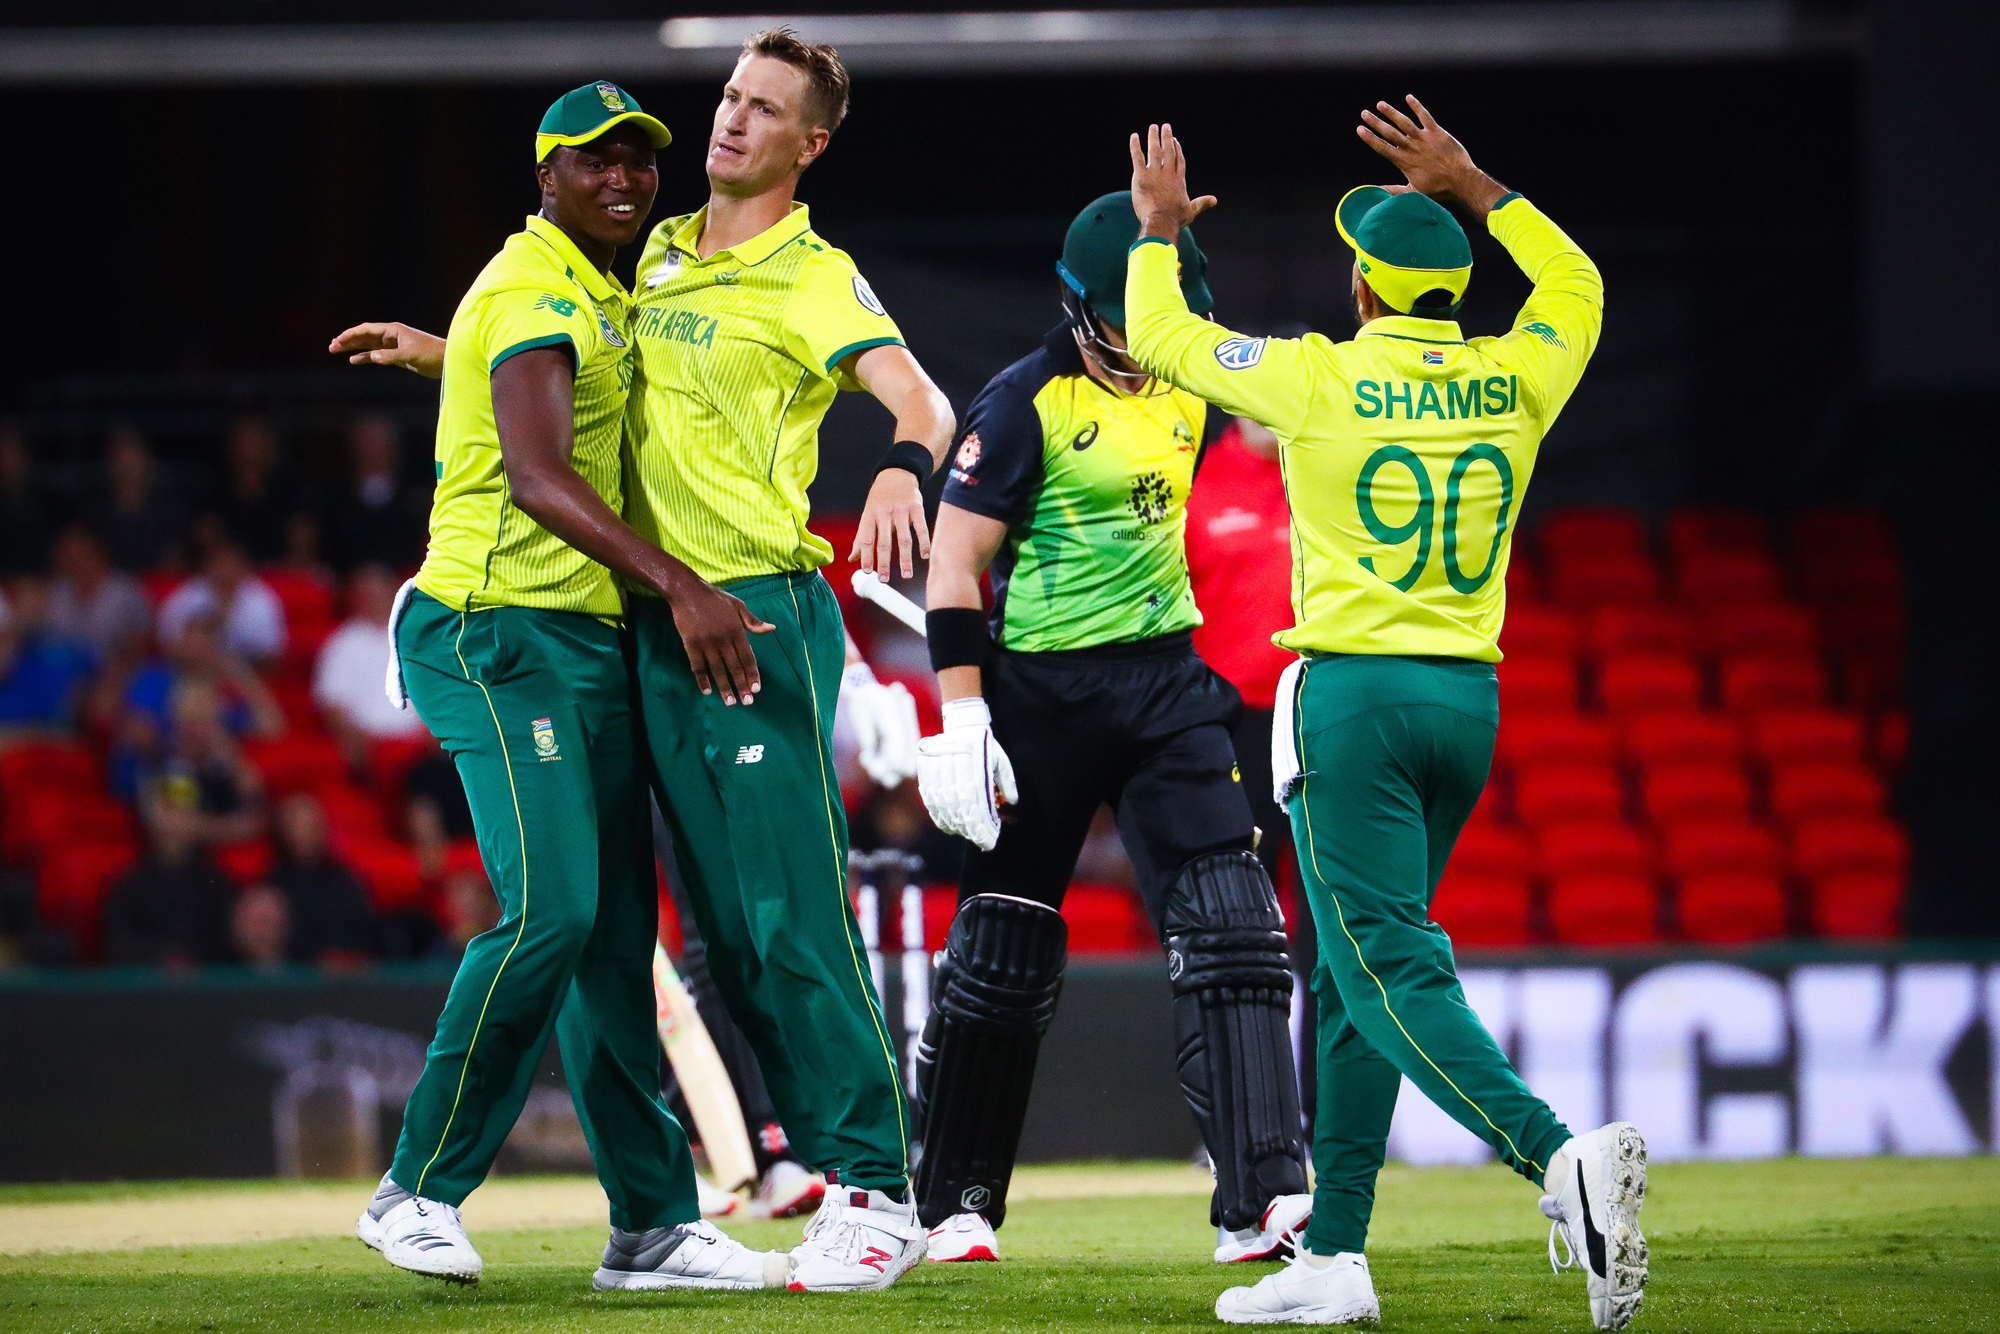 Chris Morris (C) of South Africa is congratulated by teammates after dismissing Australia's D'Arcy Short during the T20 international cricket match between Australia and South Africa at Metricon Stadium on the Gold Coast on November 17, 2018. (Photo by Pa